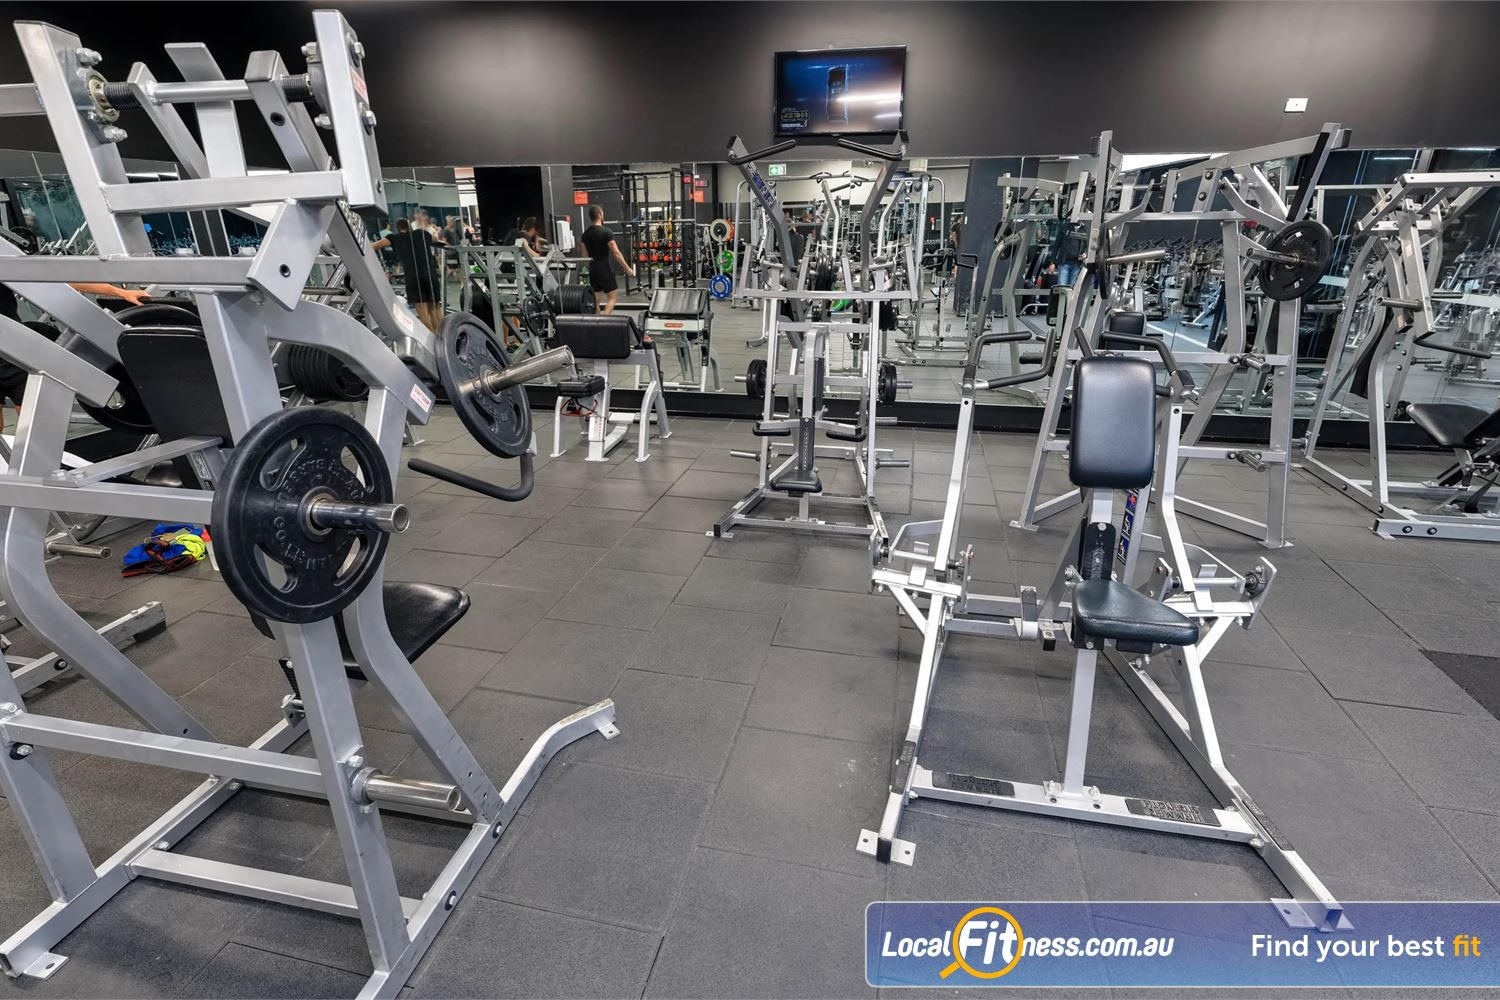 Fitness First Platinum Market St. Sydney Our Sydney gym includes heavy duty plate loading machines from Hammer Strength.